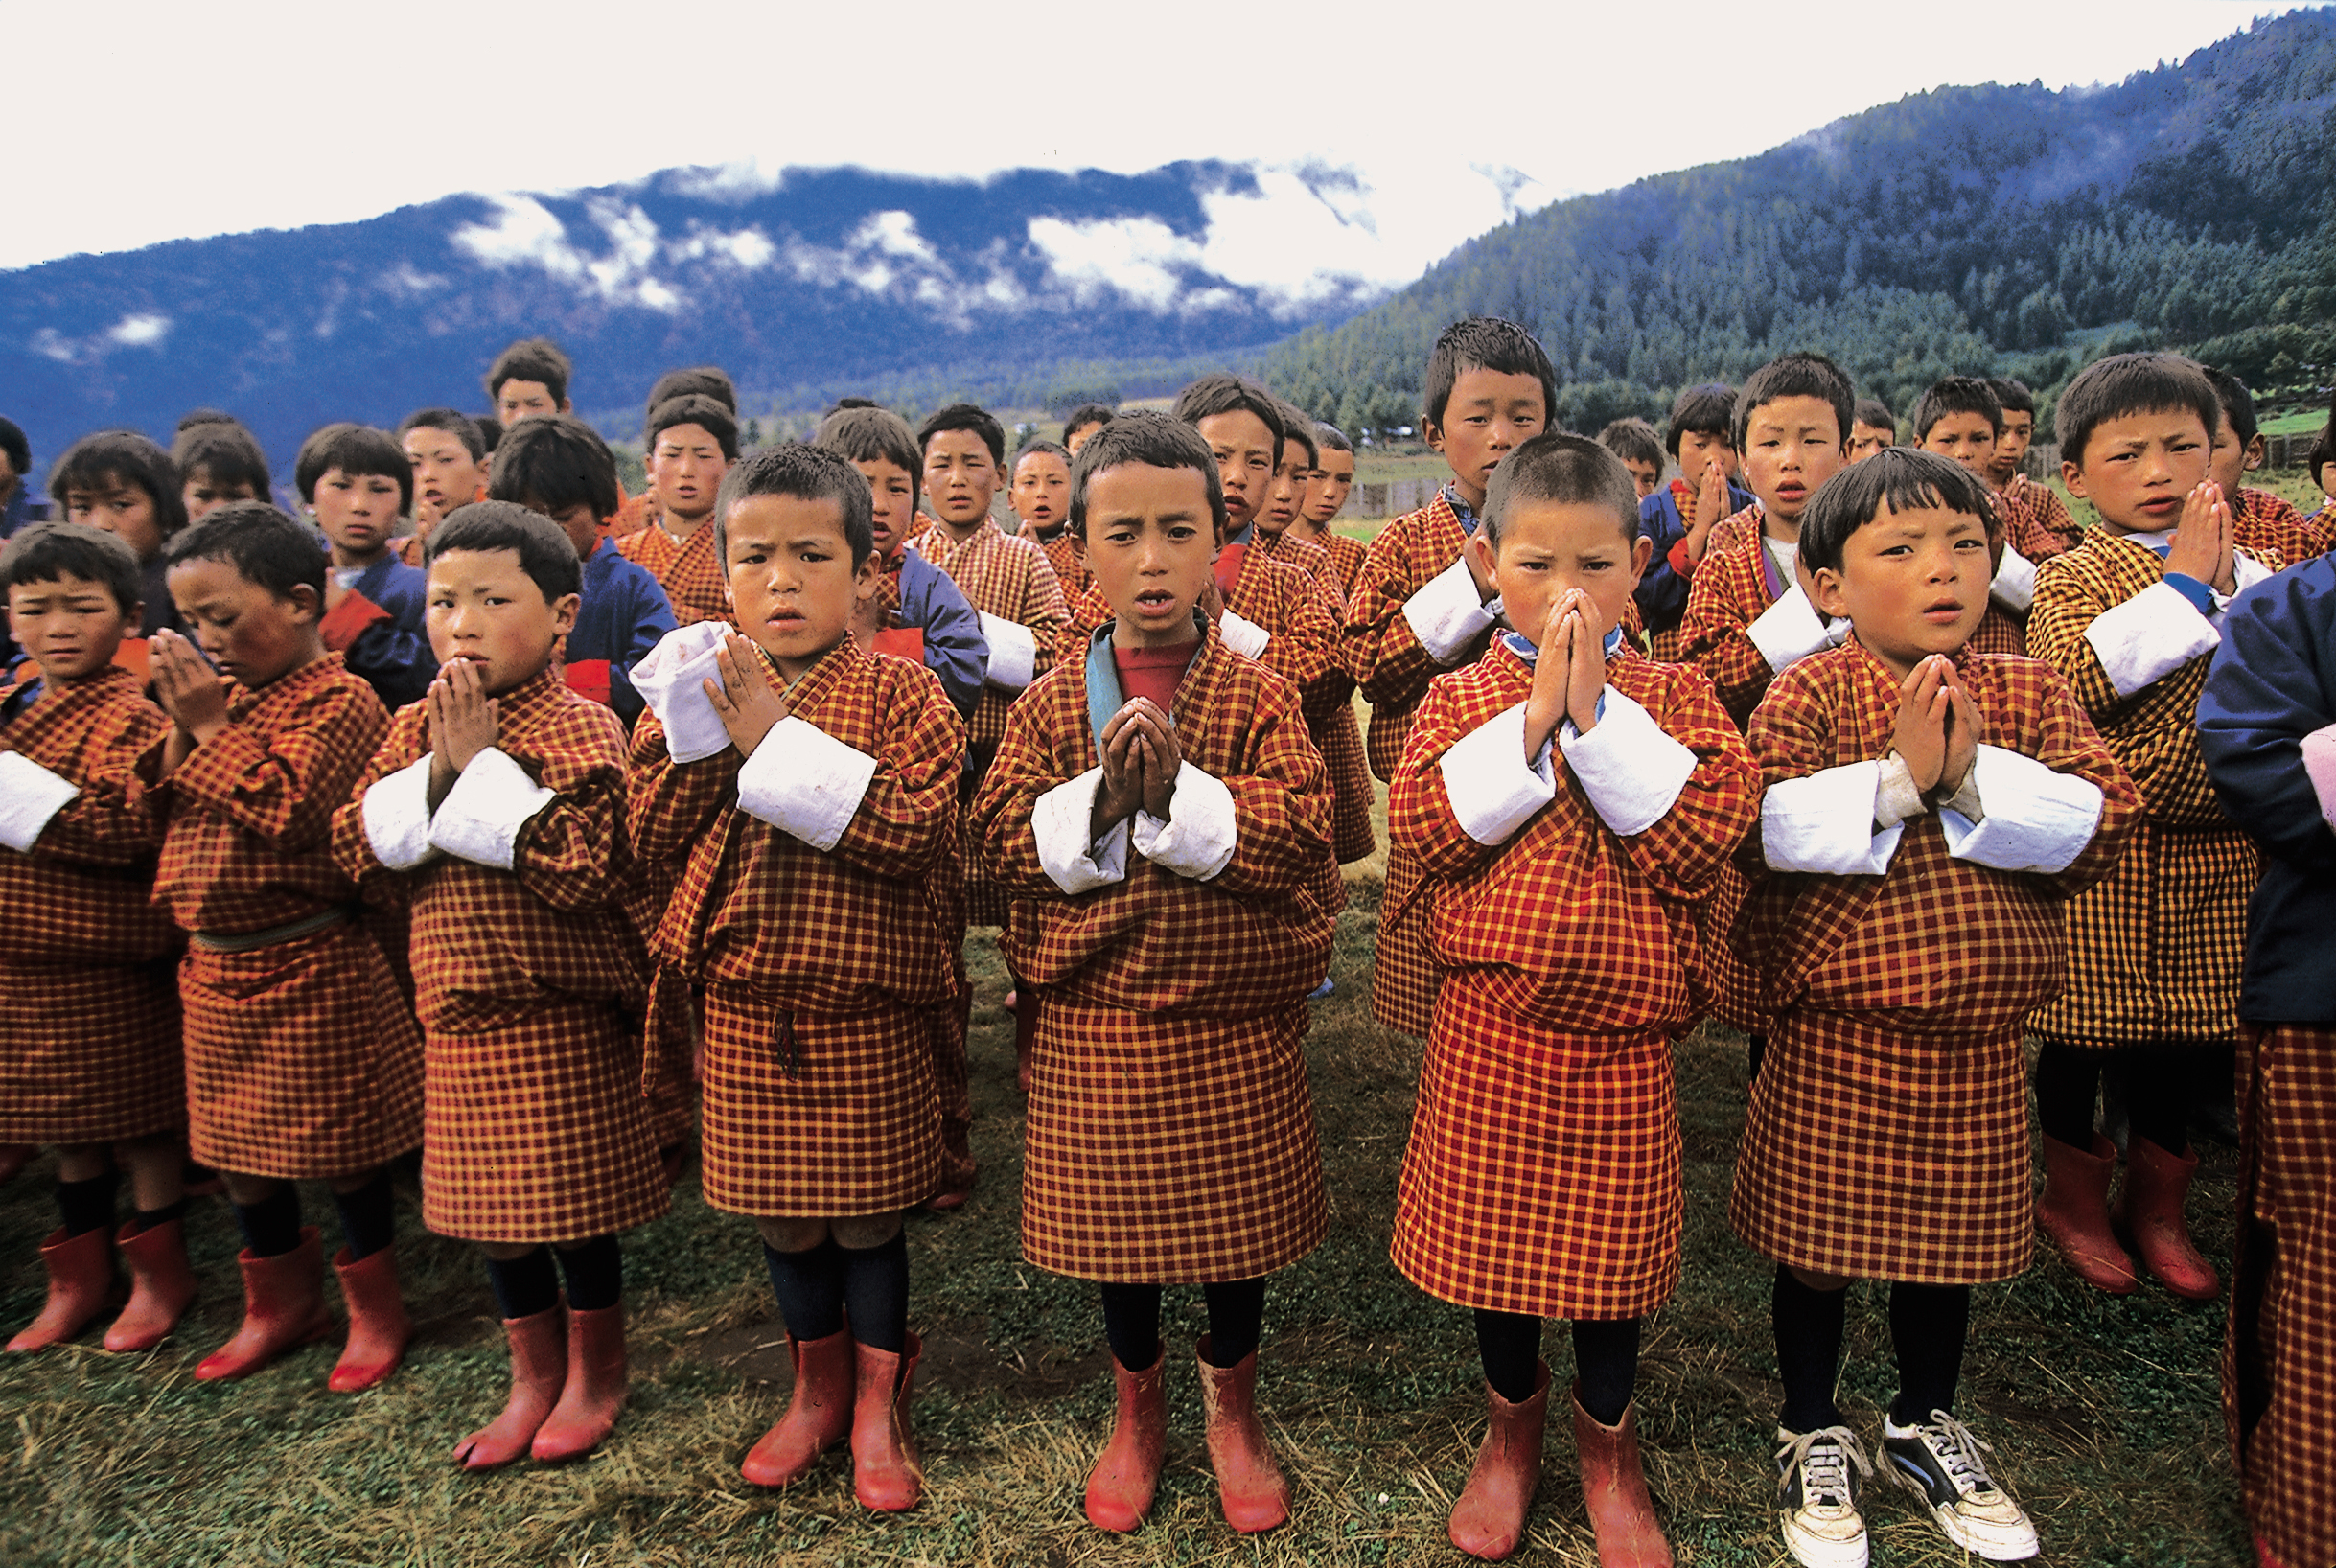 Schoolchildren performing morning prayers at school assembly in Bhutan.